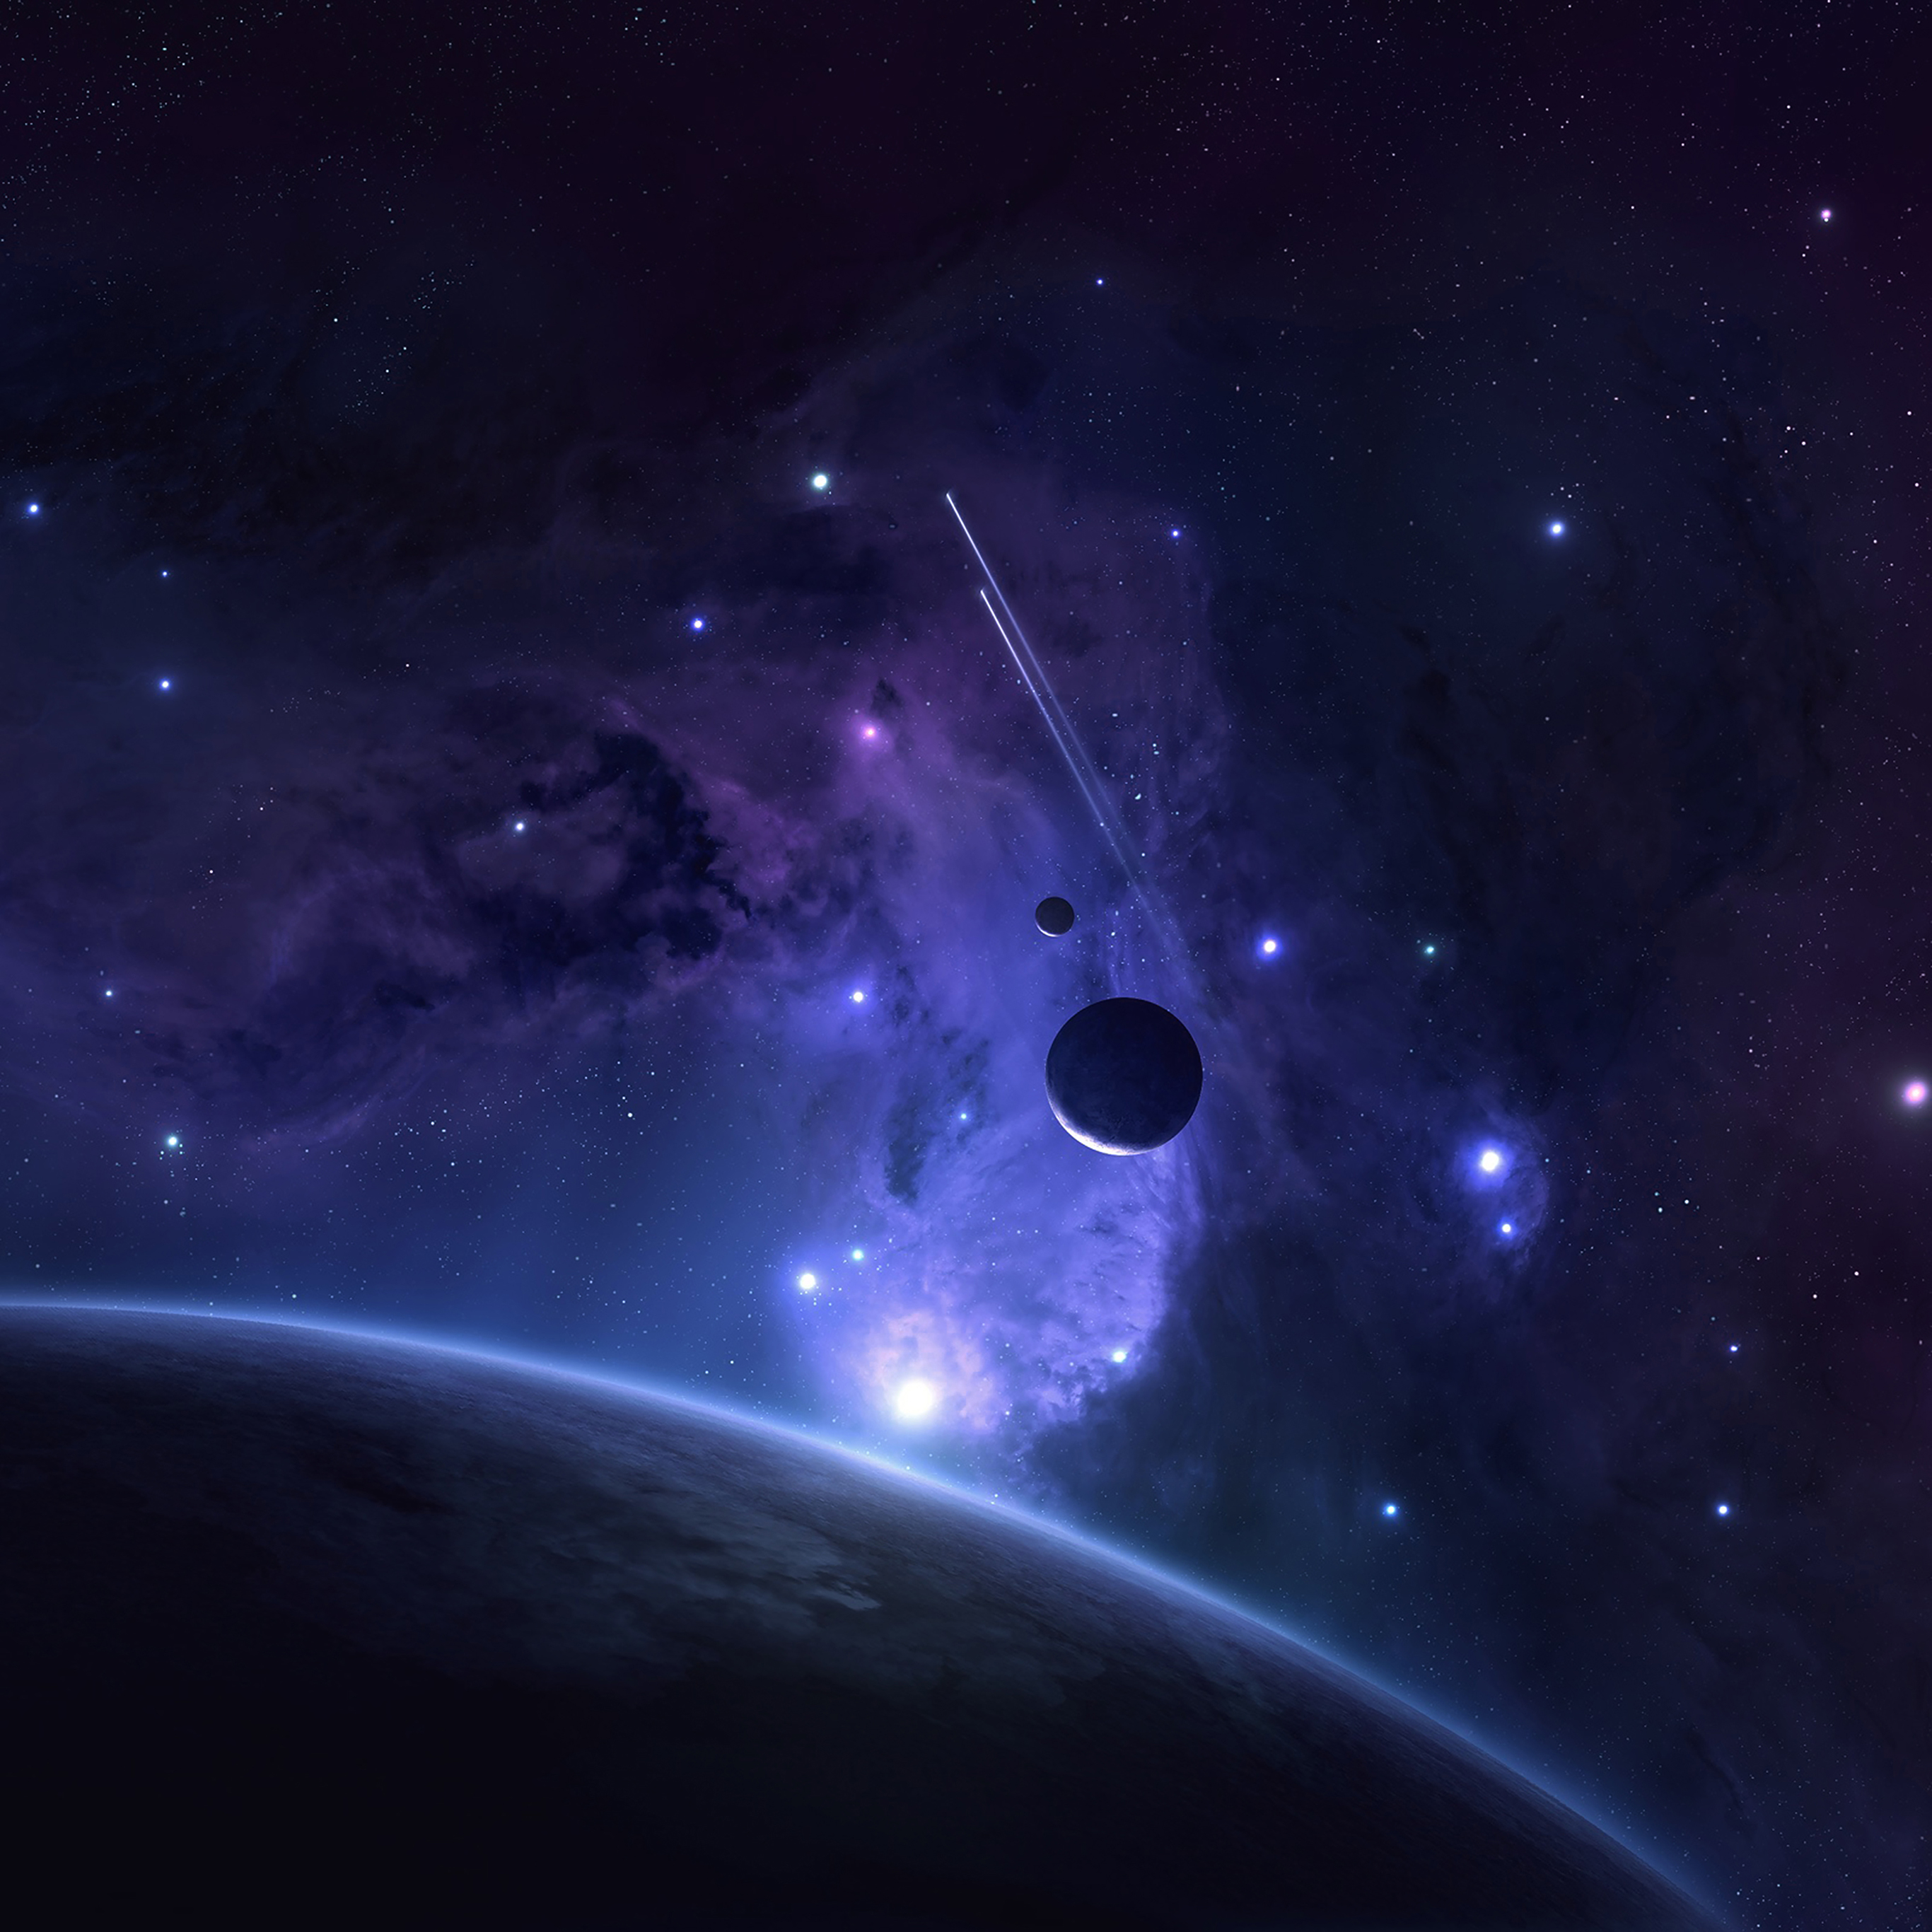 Mj44 Planets Space Abstract Blue Art Wallpaper